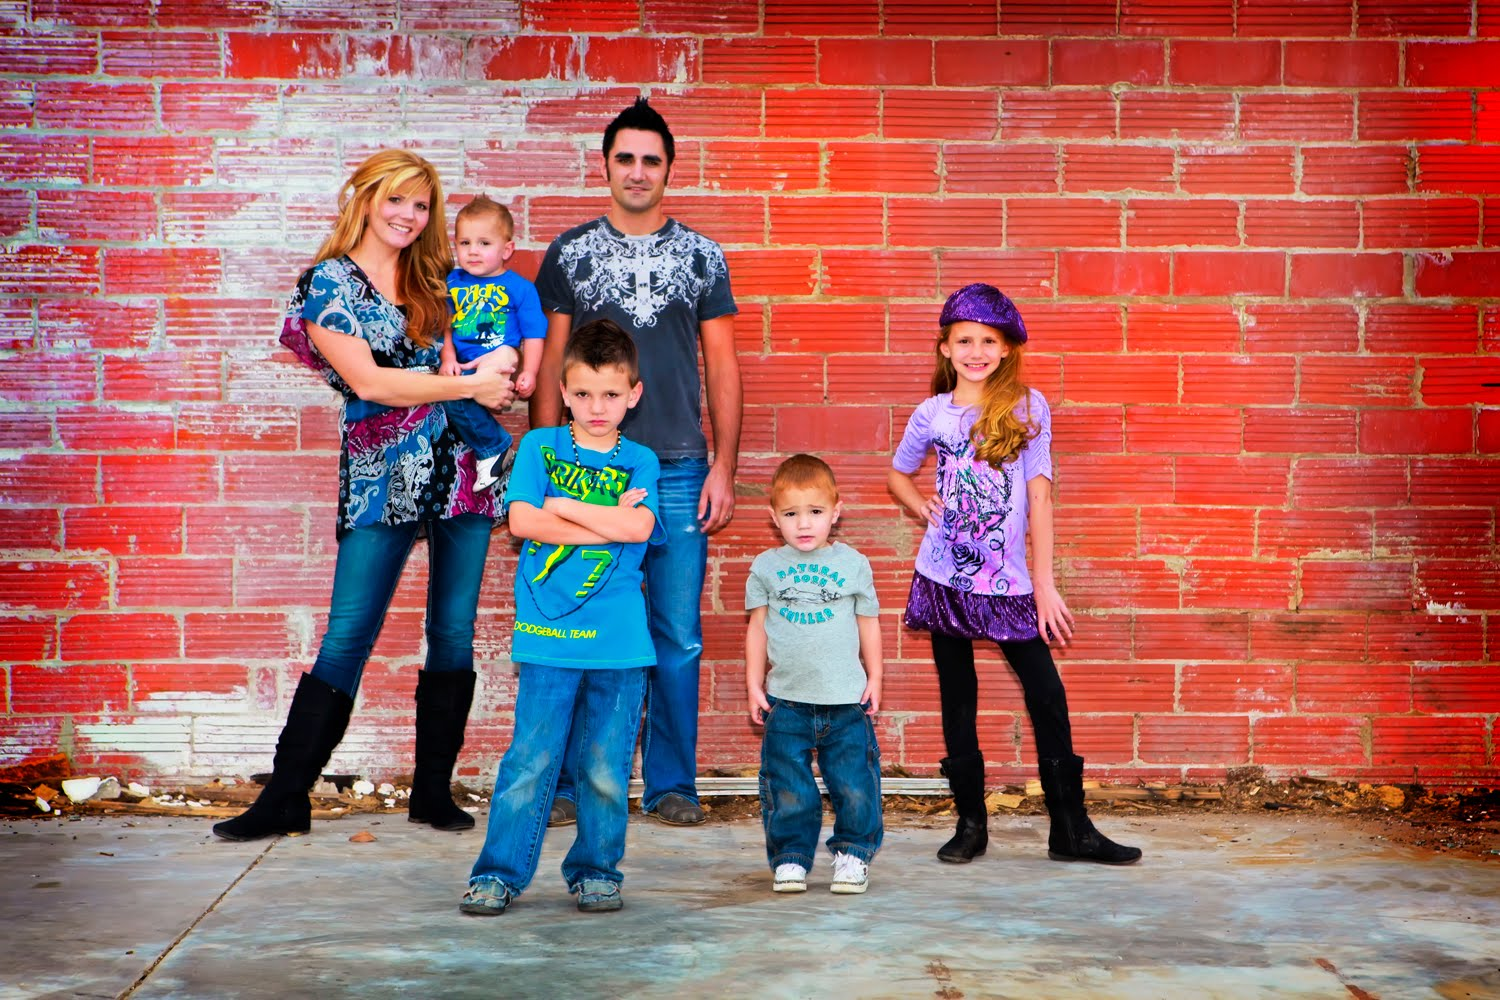 Artistic Images Photography Unique Family Photos For A